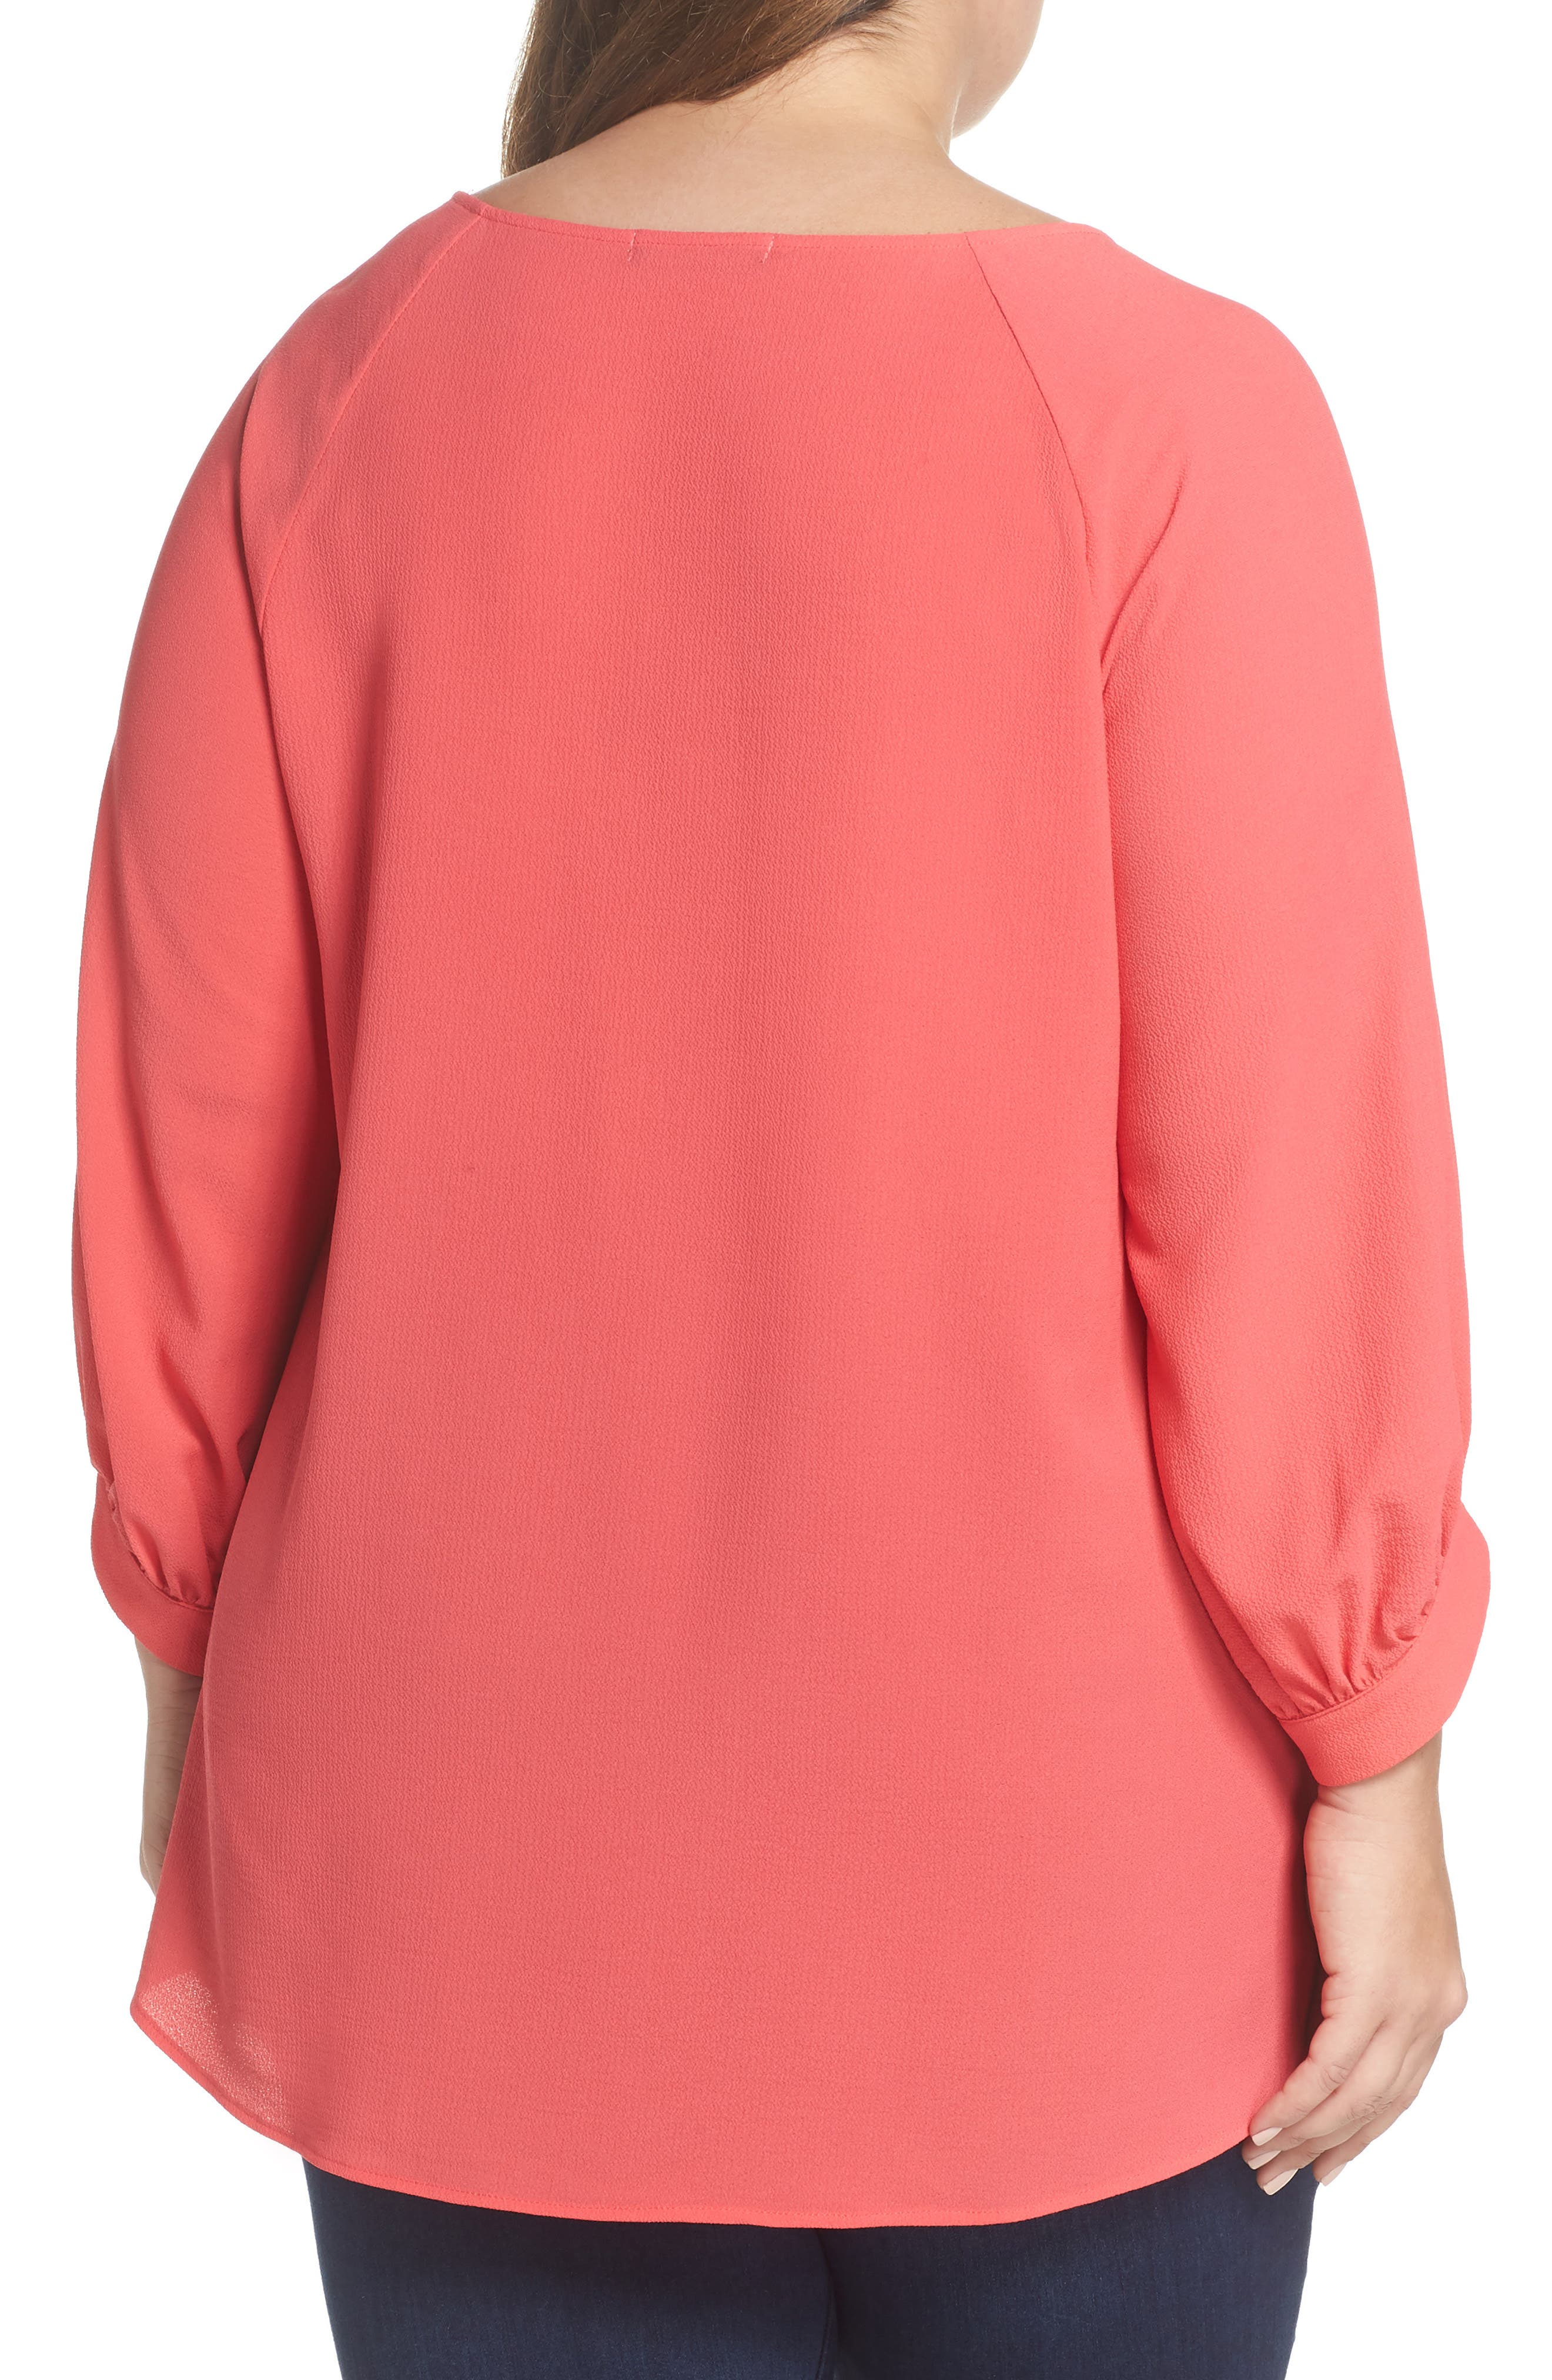 x Living in Yellow Maggie Twist Hem Top,                             Alternate thumbnail 3, color,                             Poppy